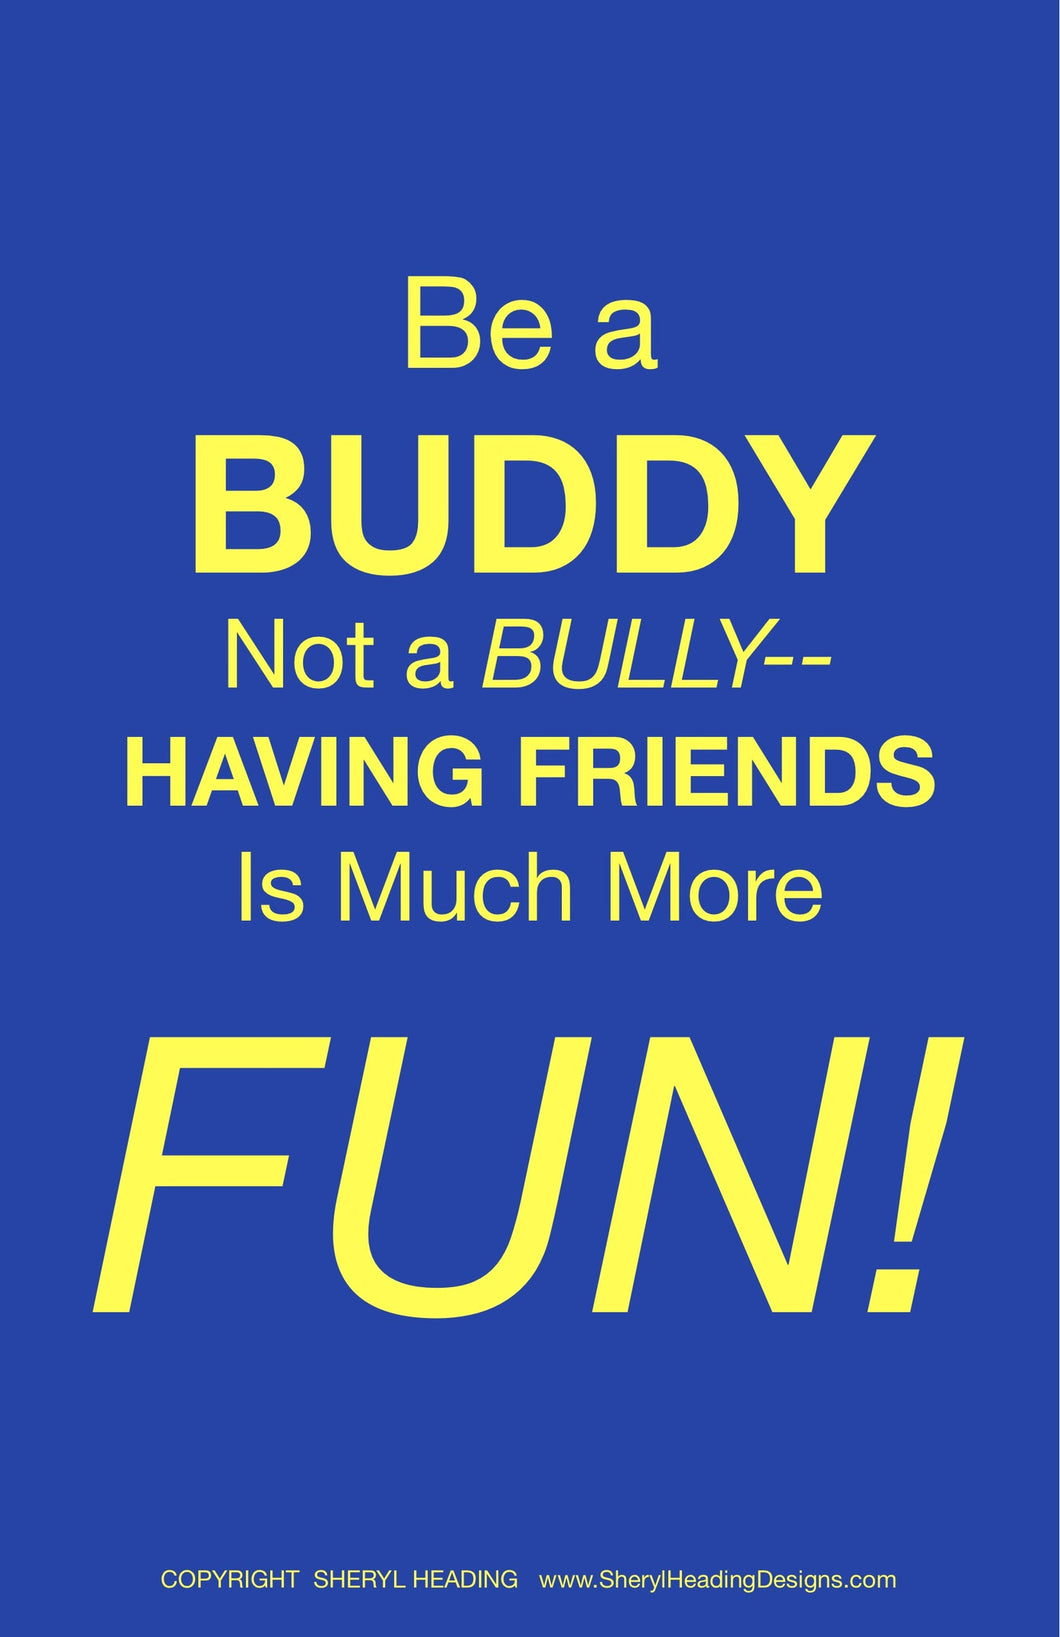 BE A BUDDY NOT A BULLY Poster - Sheryl Heading Designs